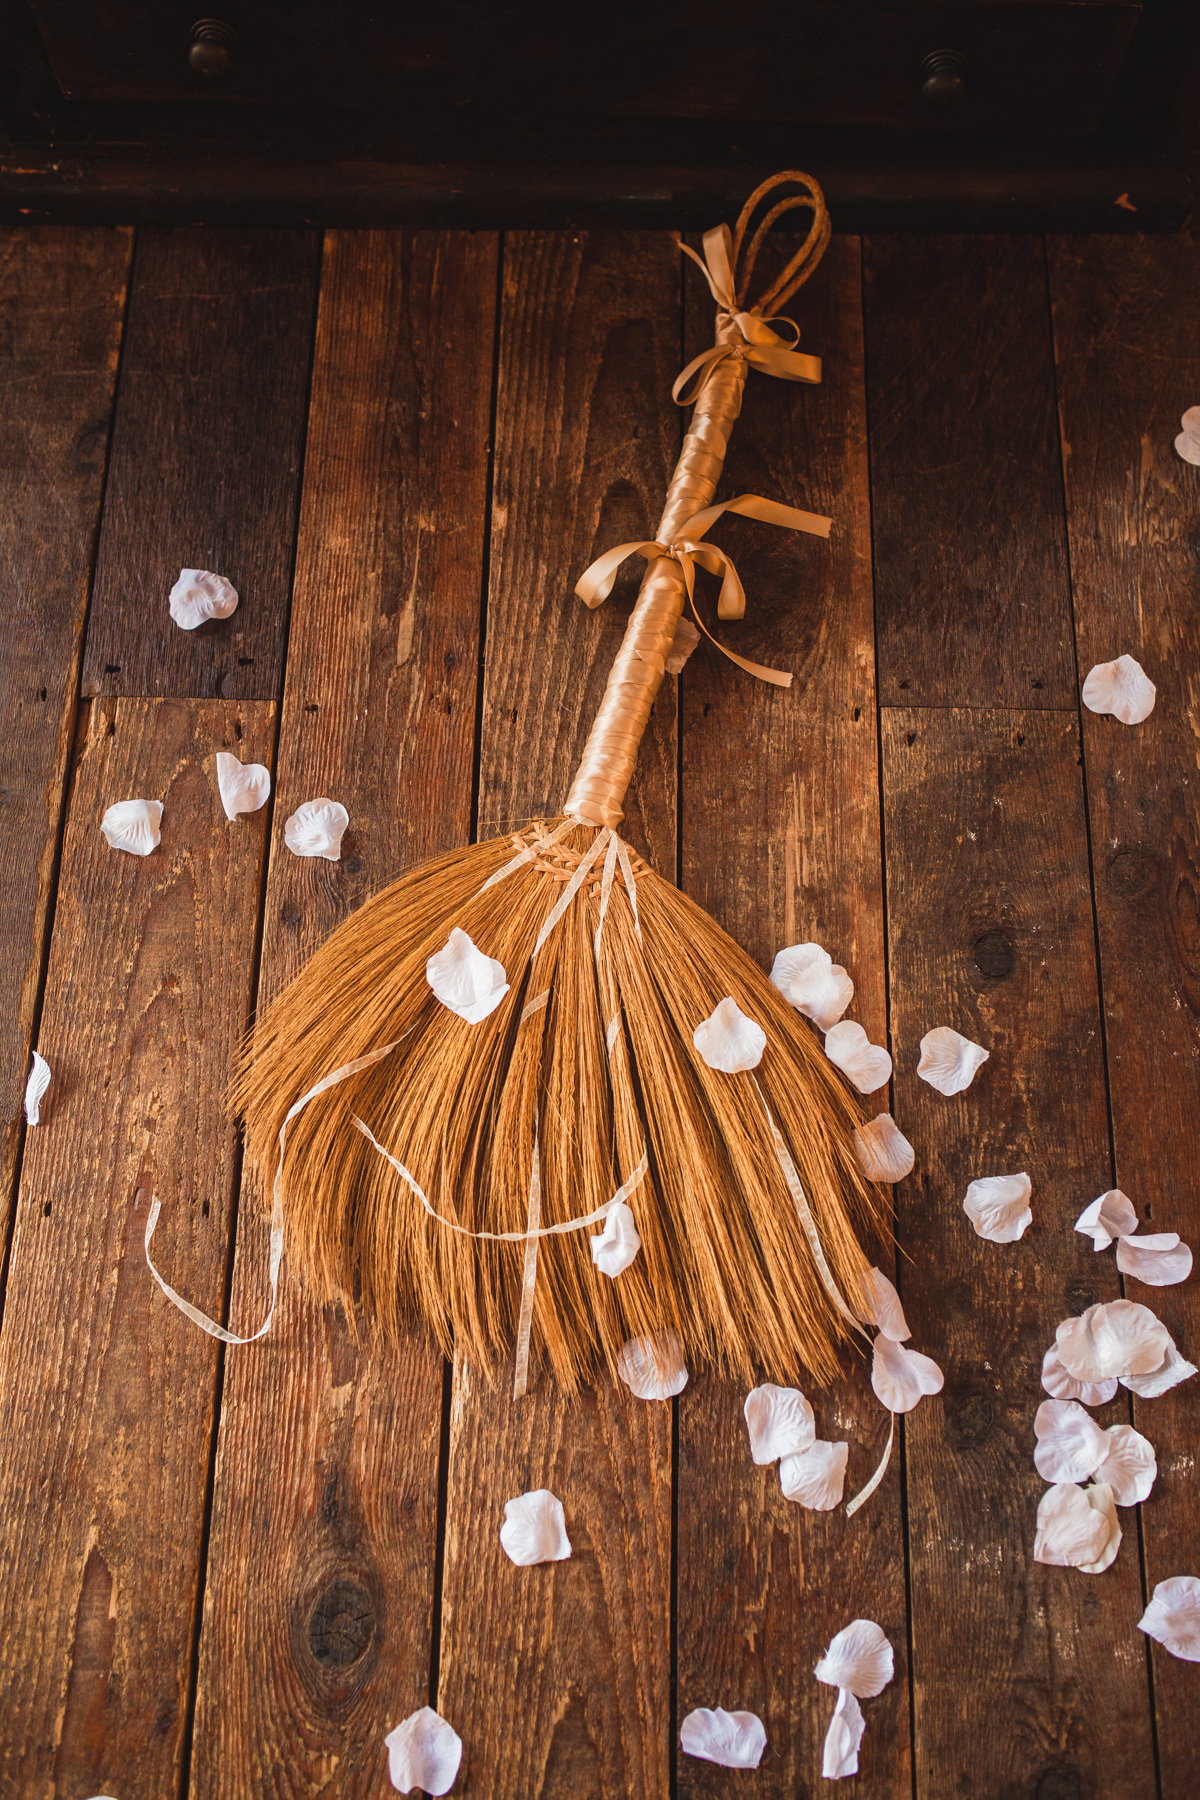 chicago-documentary-wedding-at-a-new-leaf-vintage-inspired-jumping-the-broom-oriana-koren-1094.jpg